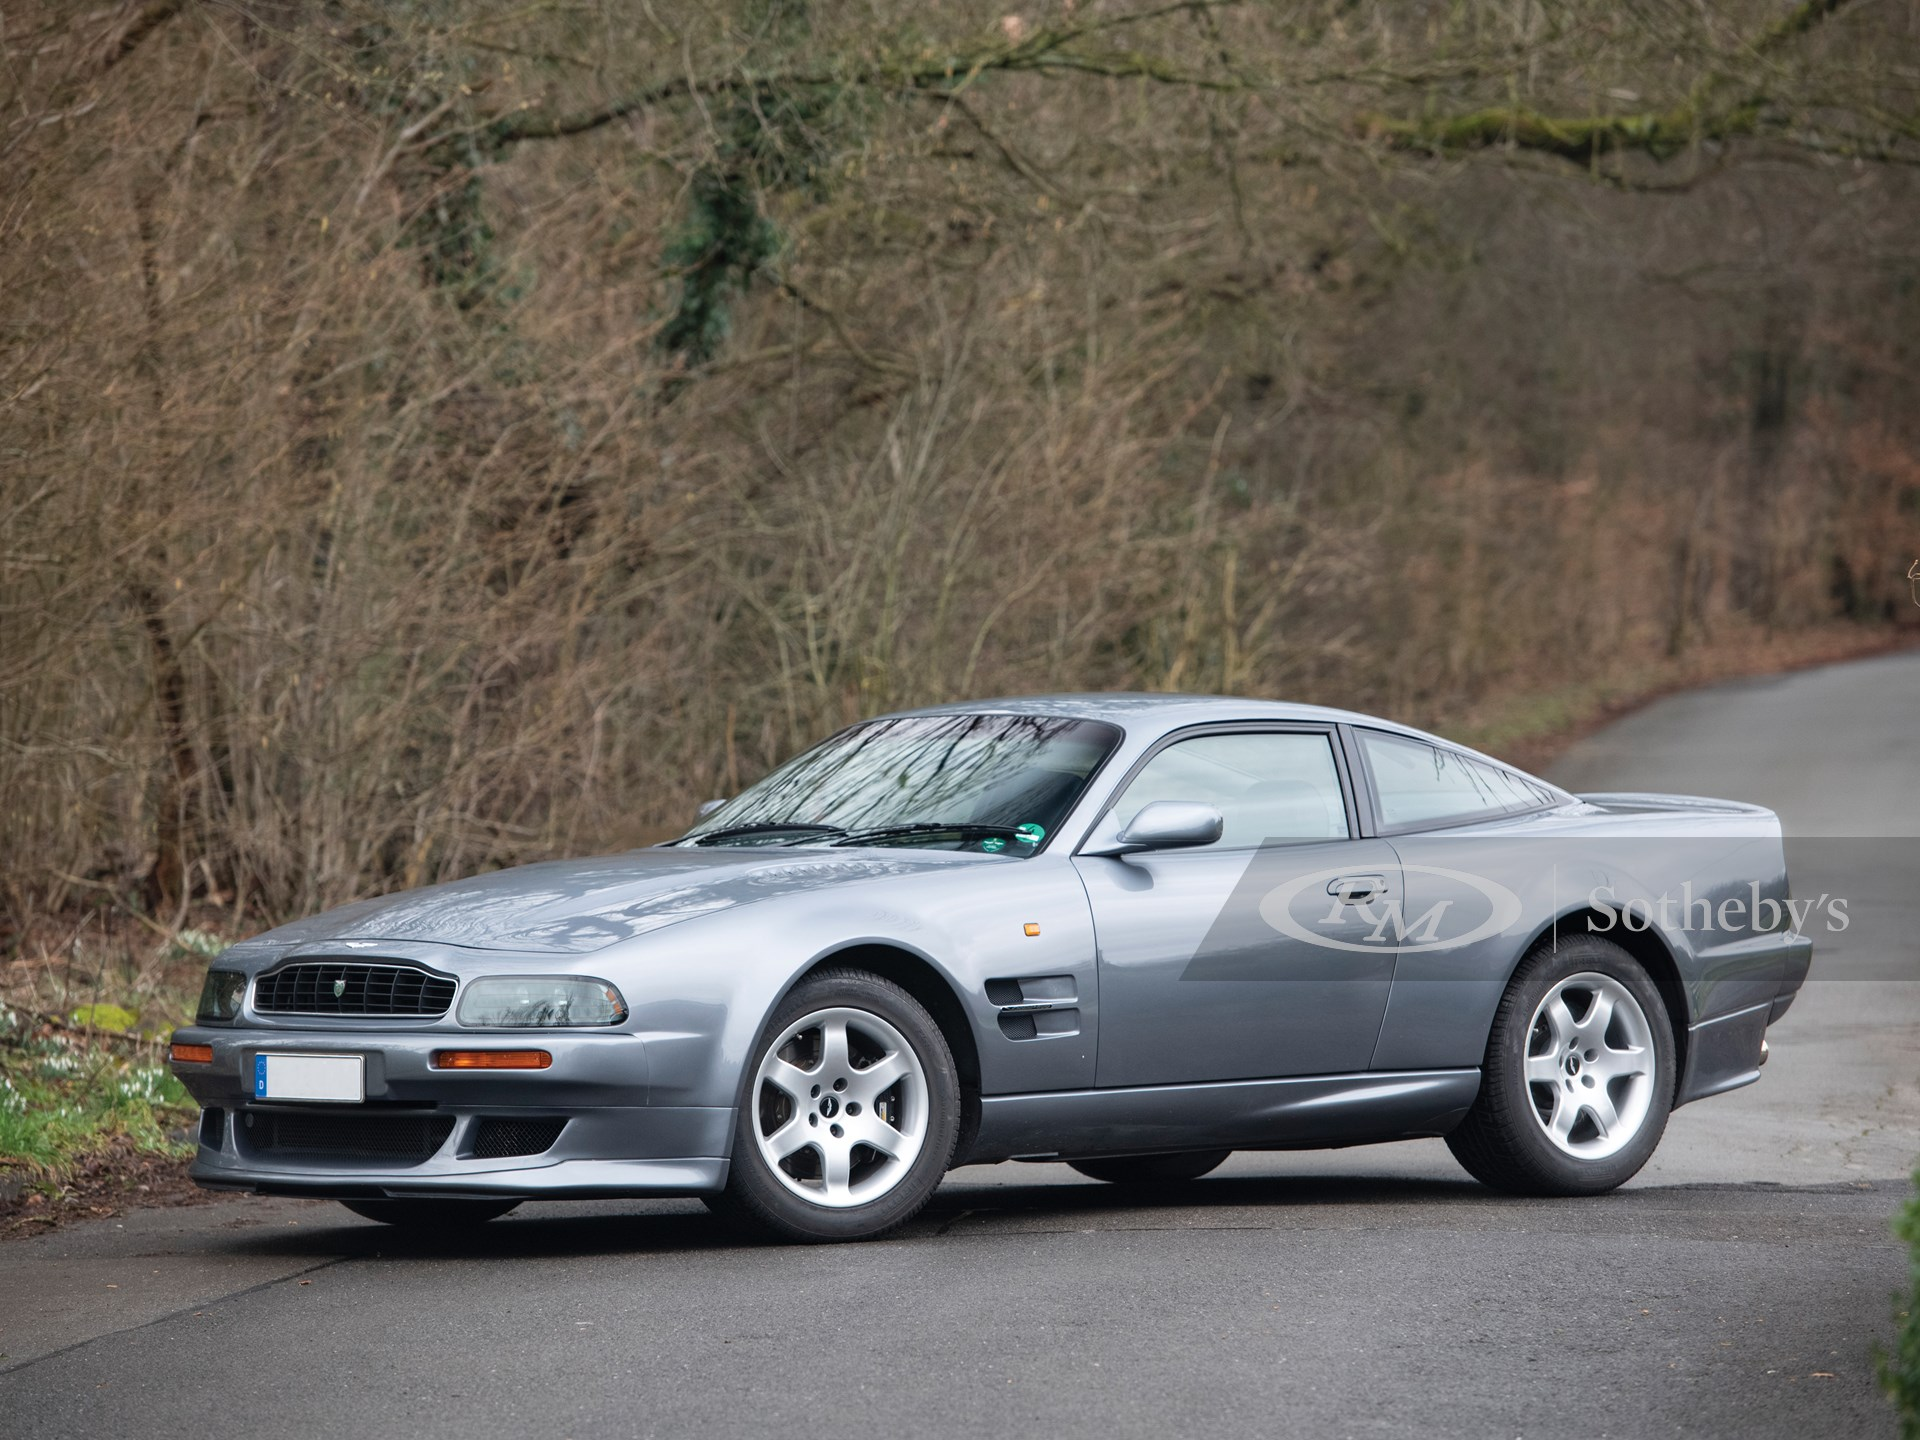 1998 Aston Martin Vantage V600 The European Sale Featuring The Petitjean Collection Rm Online Only